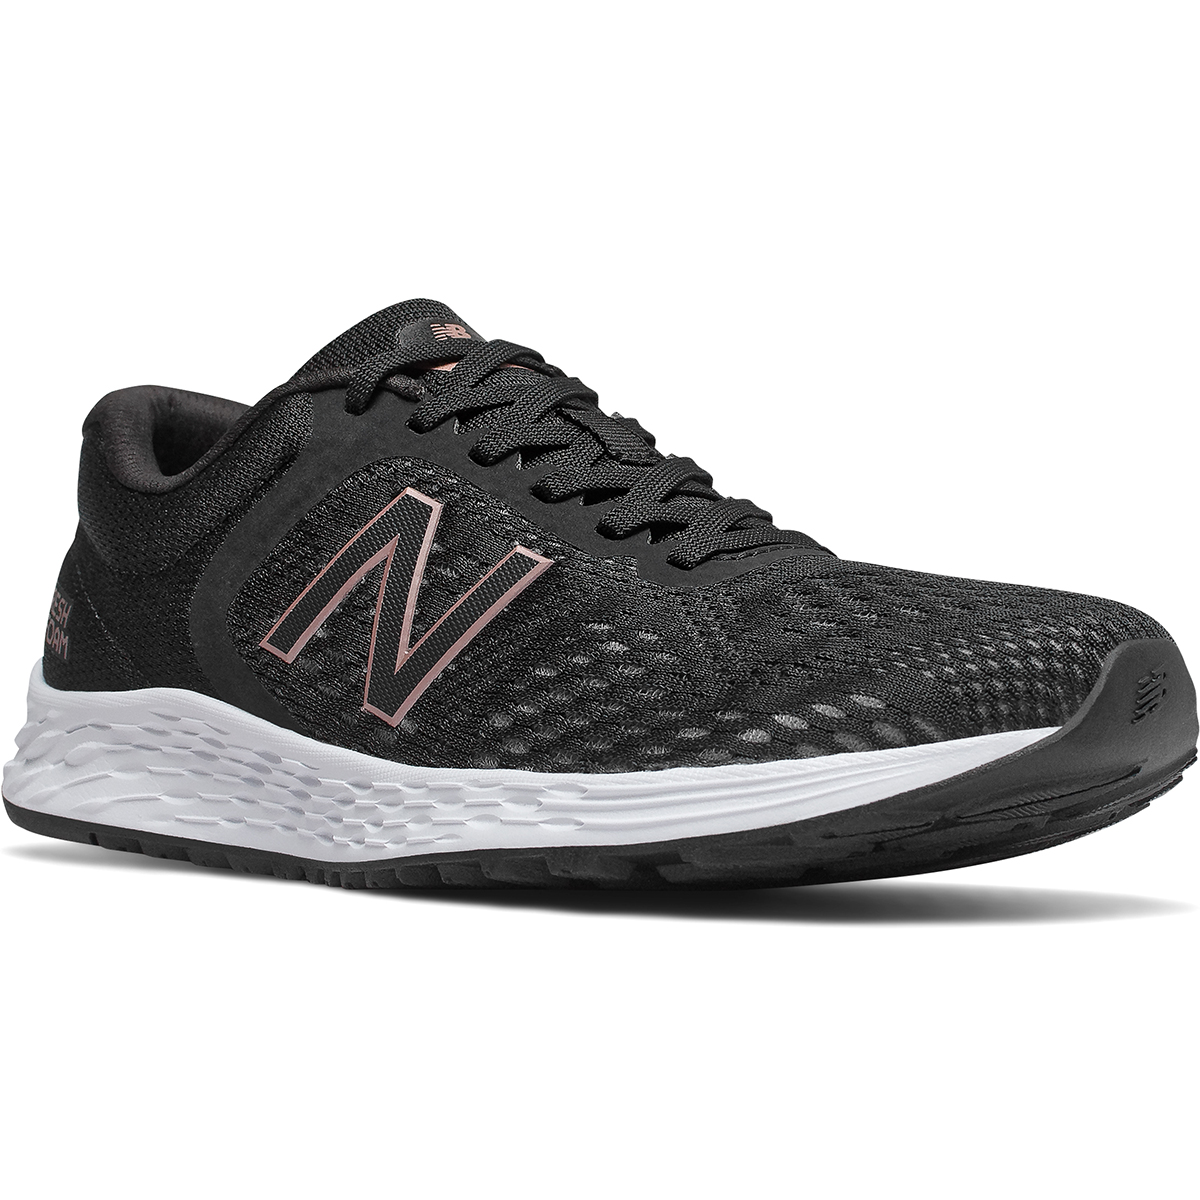 New Balance Women's Arishi V2 Running Shoe - Black, 6